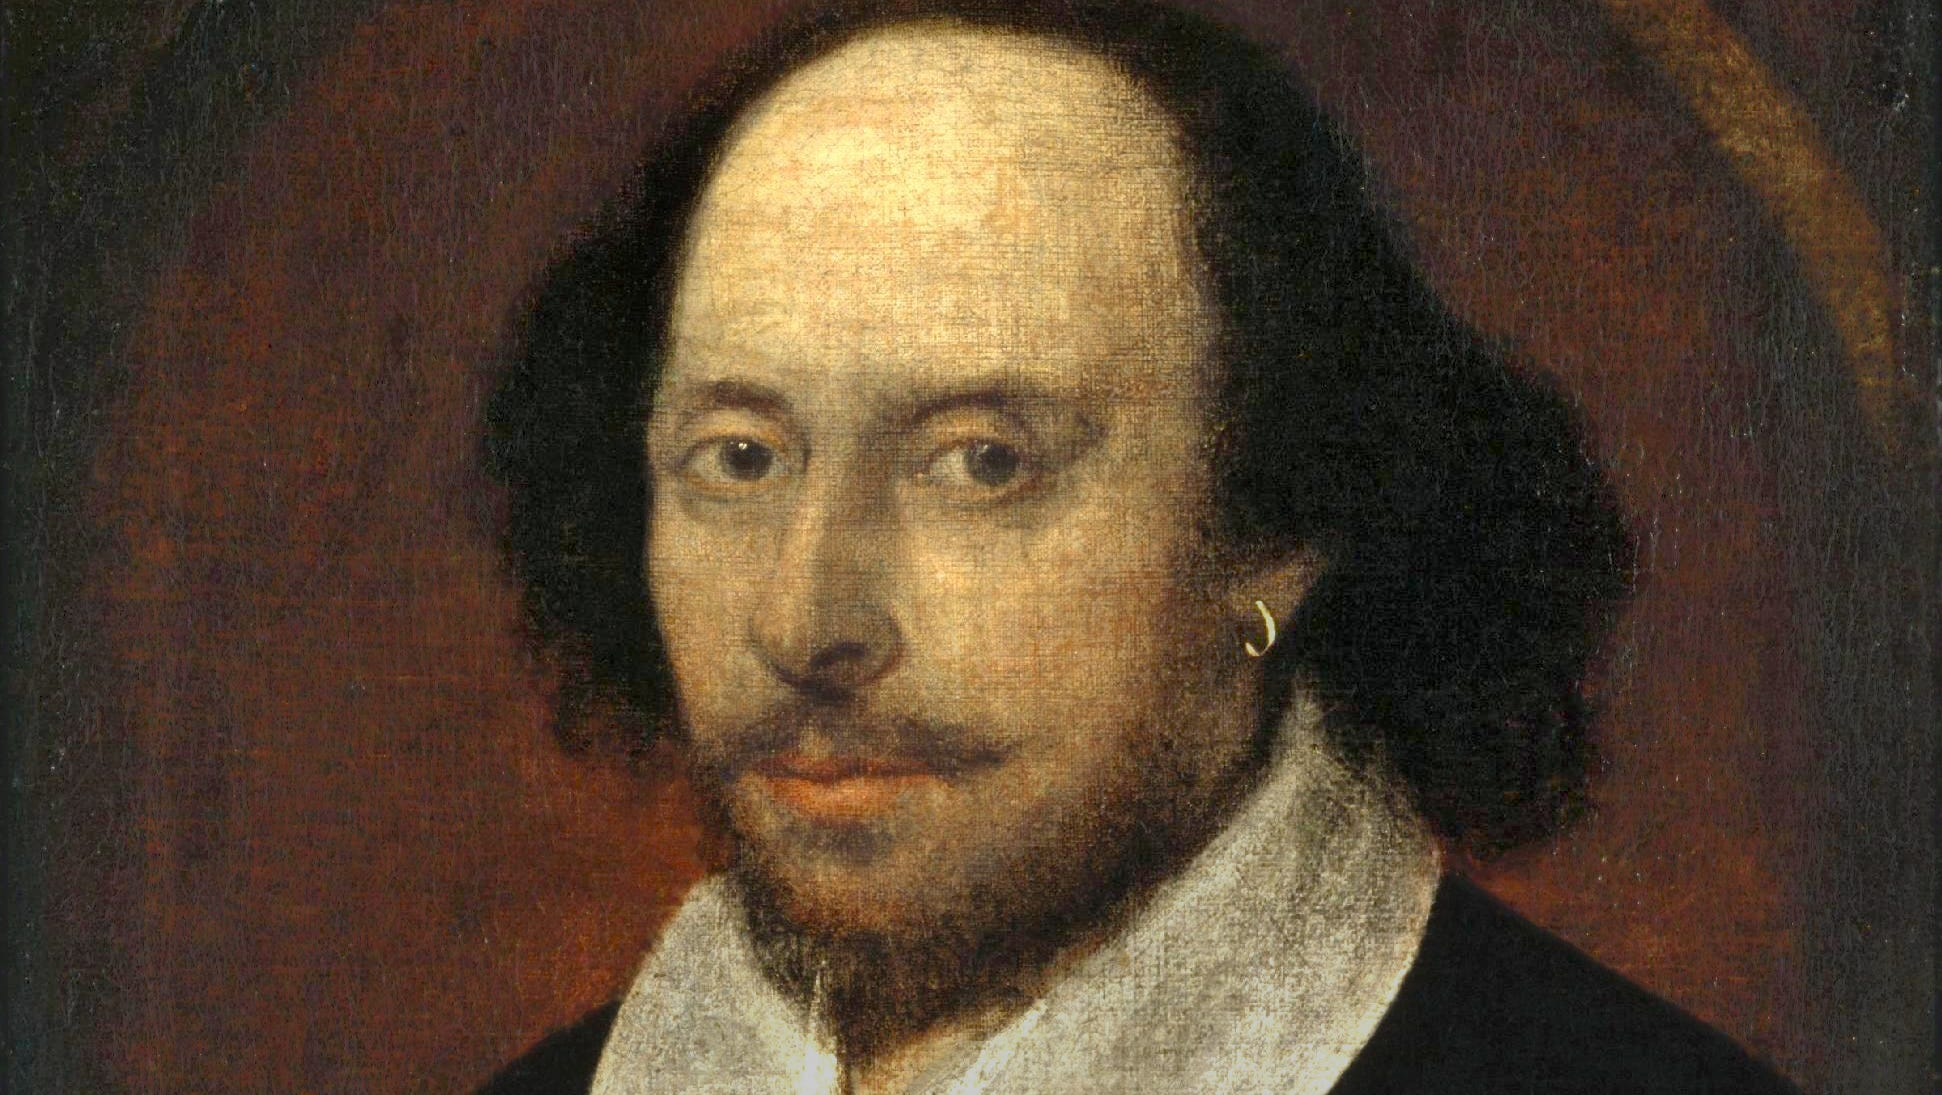 Today in History, April 23: 'The Bard' William Shakespeare died in 1616